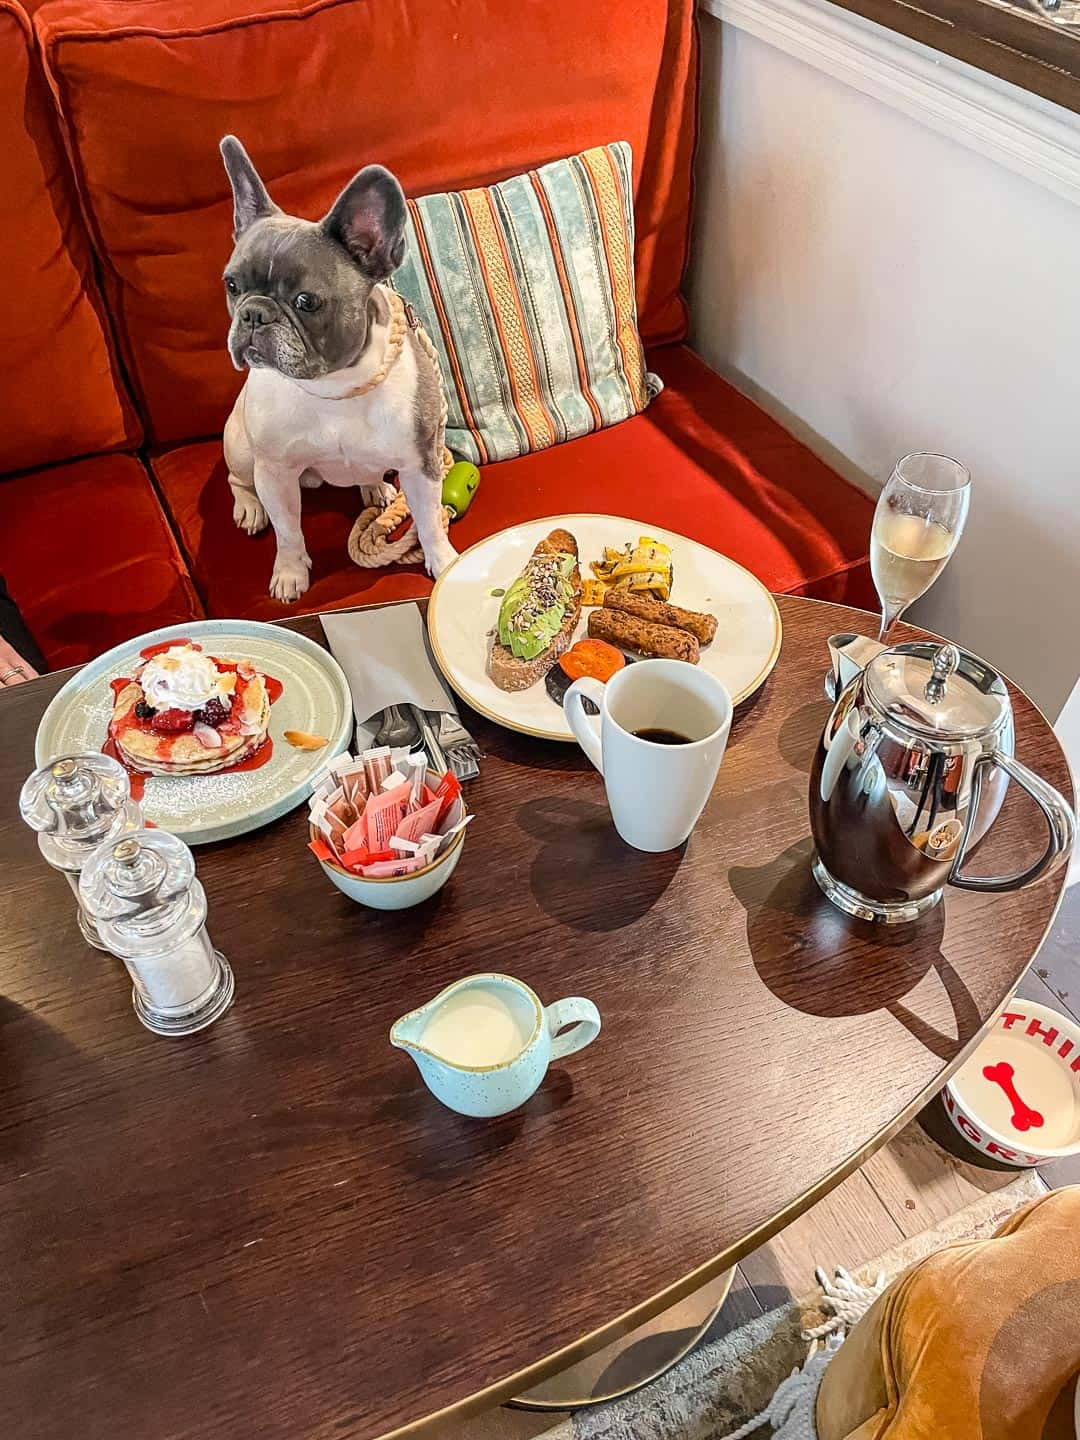 Breakfast is served at the dog-friendly Richmond Hill Hotel